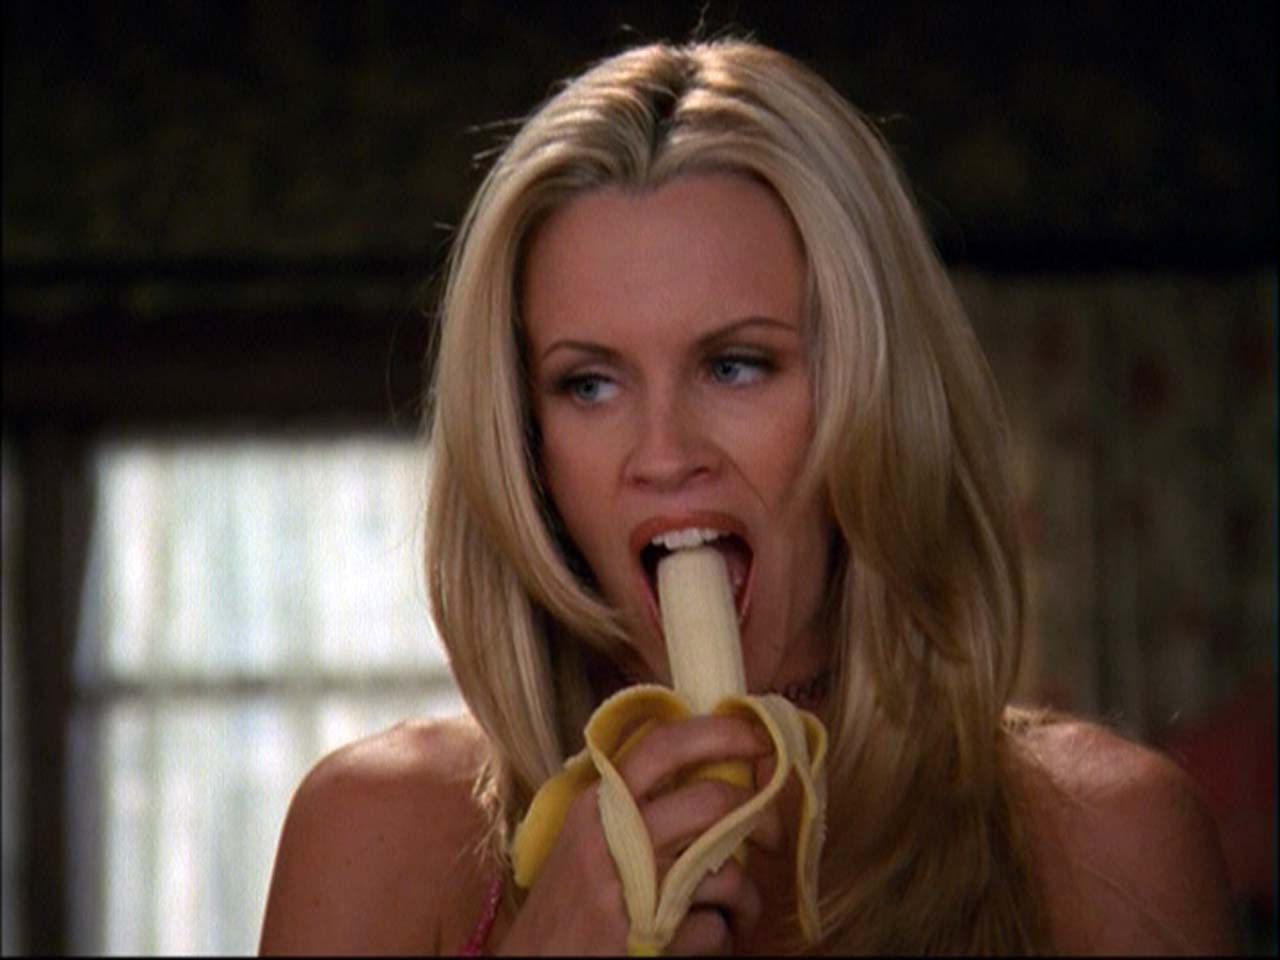 Jenny mccarthy sucking dick can suggest